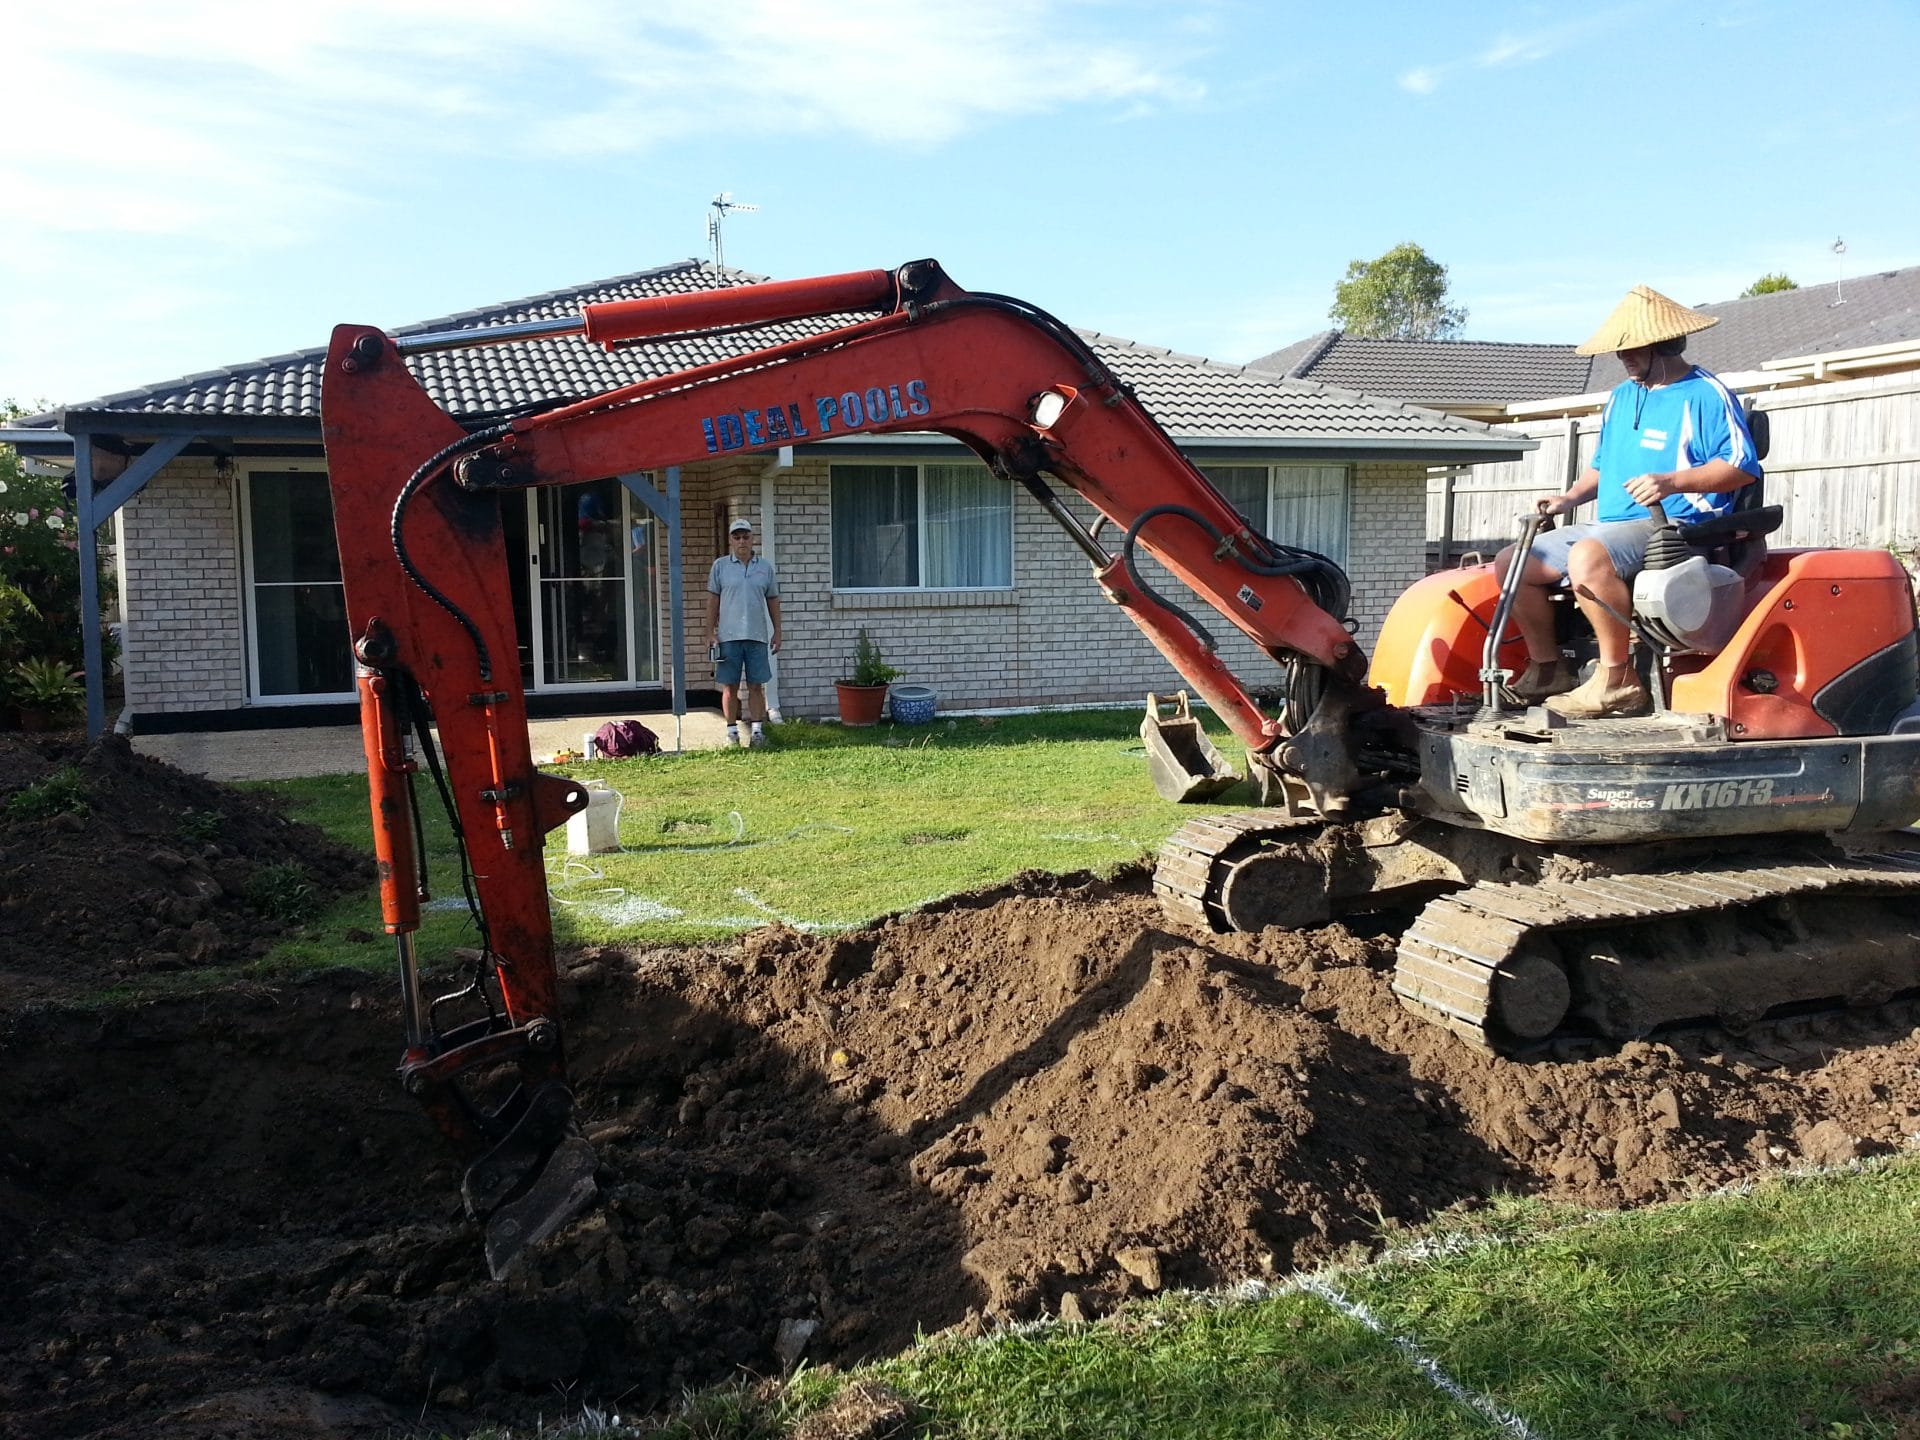 An excavator digging a hole for a pool at a home on the Gold Coast